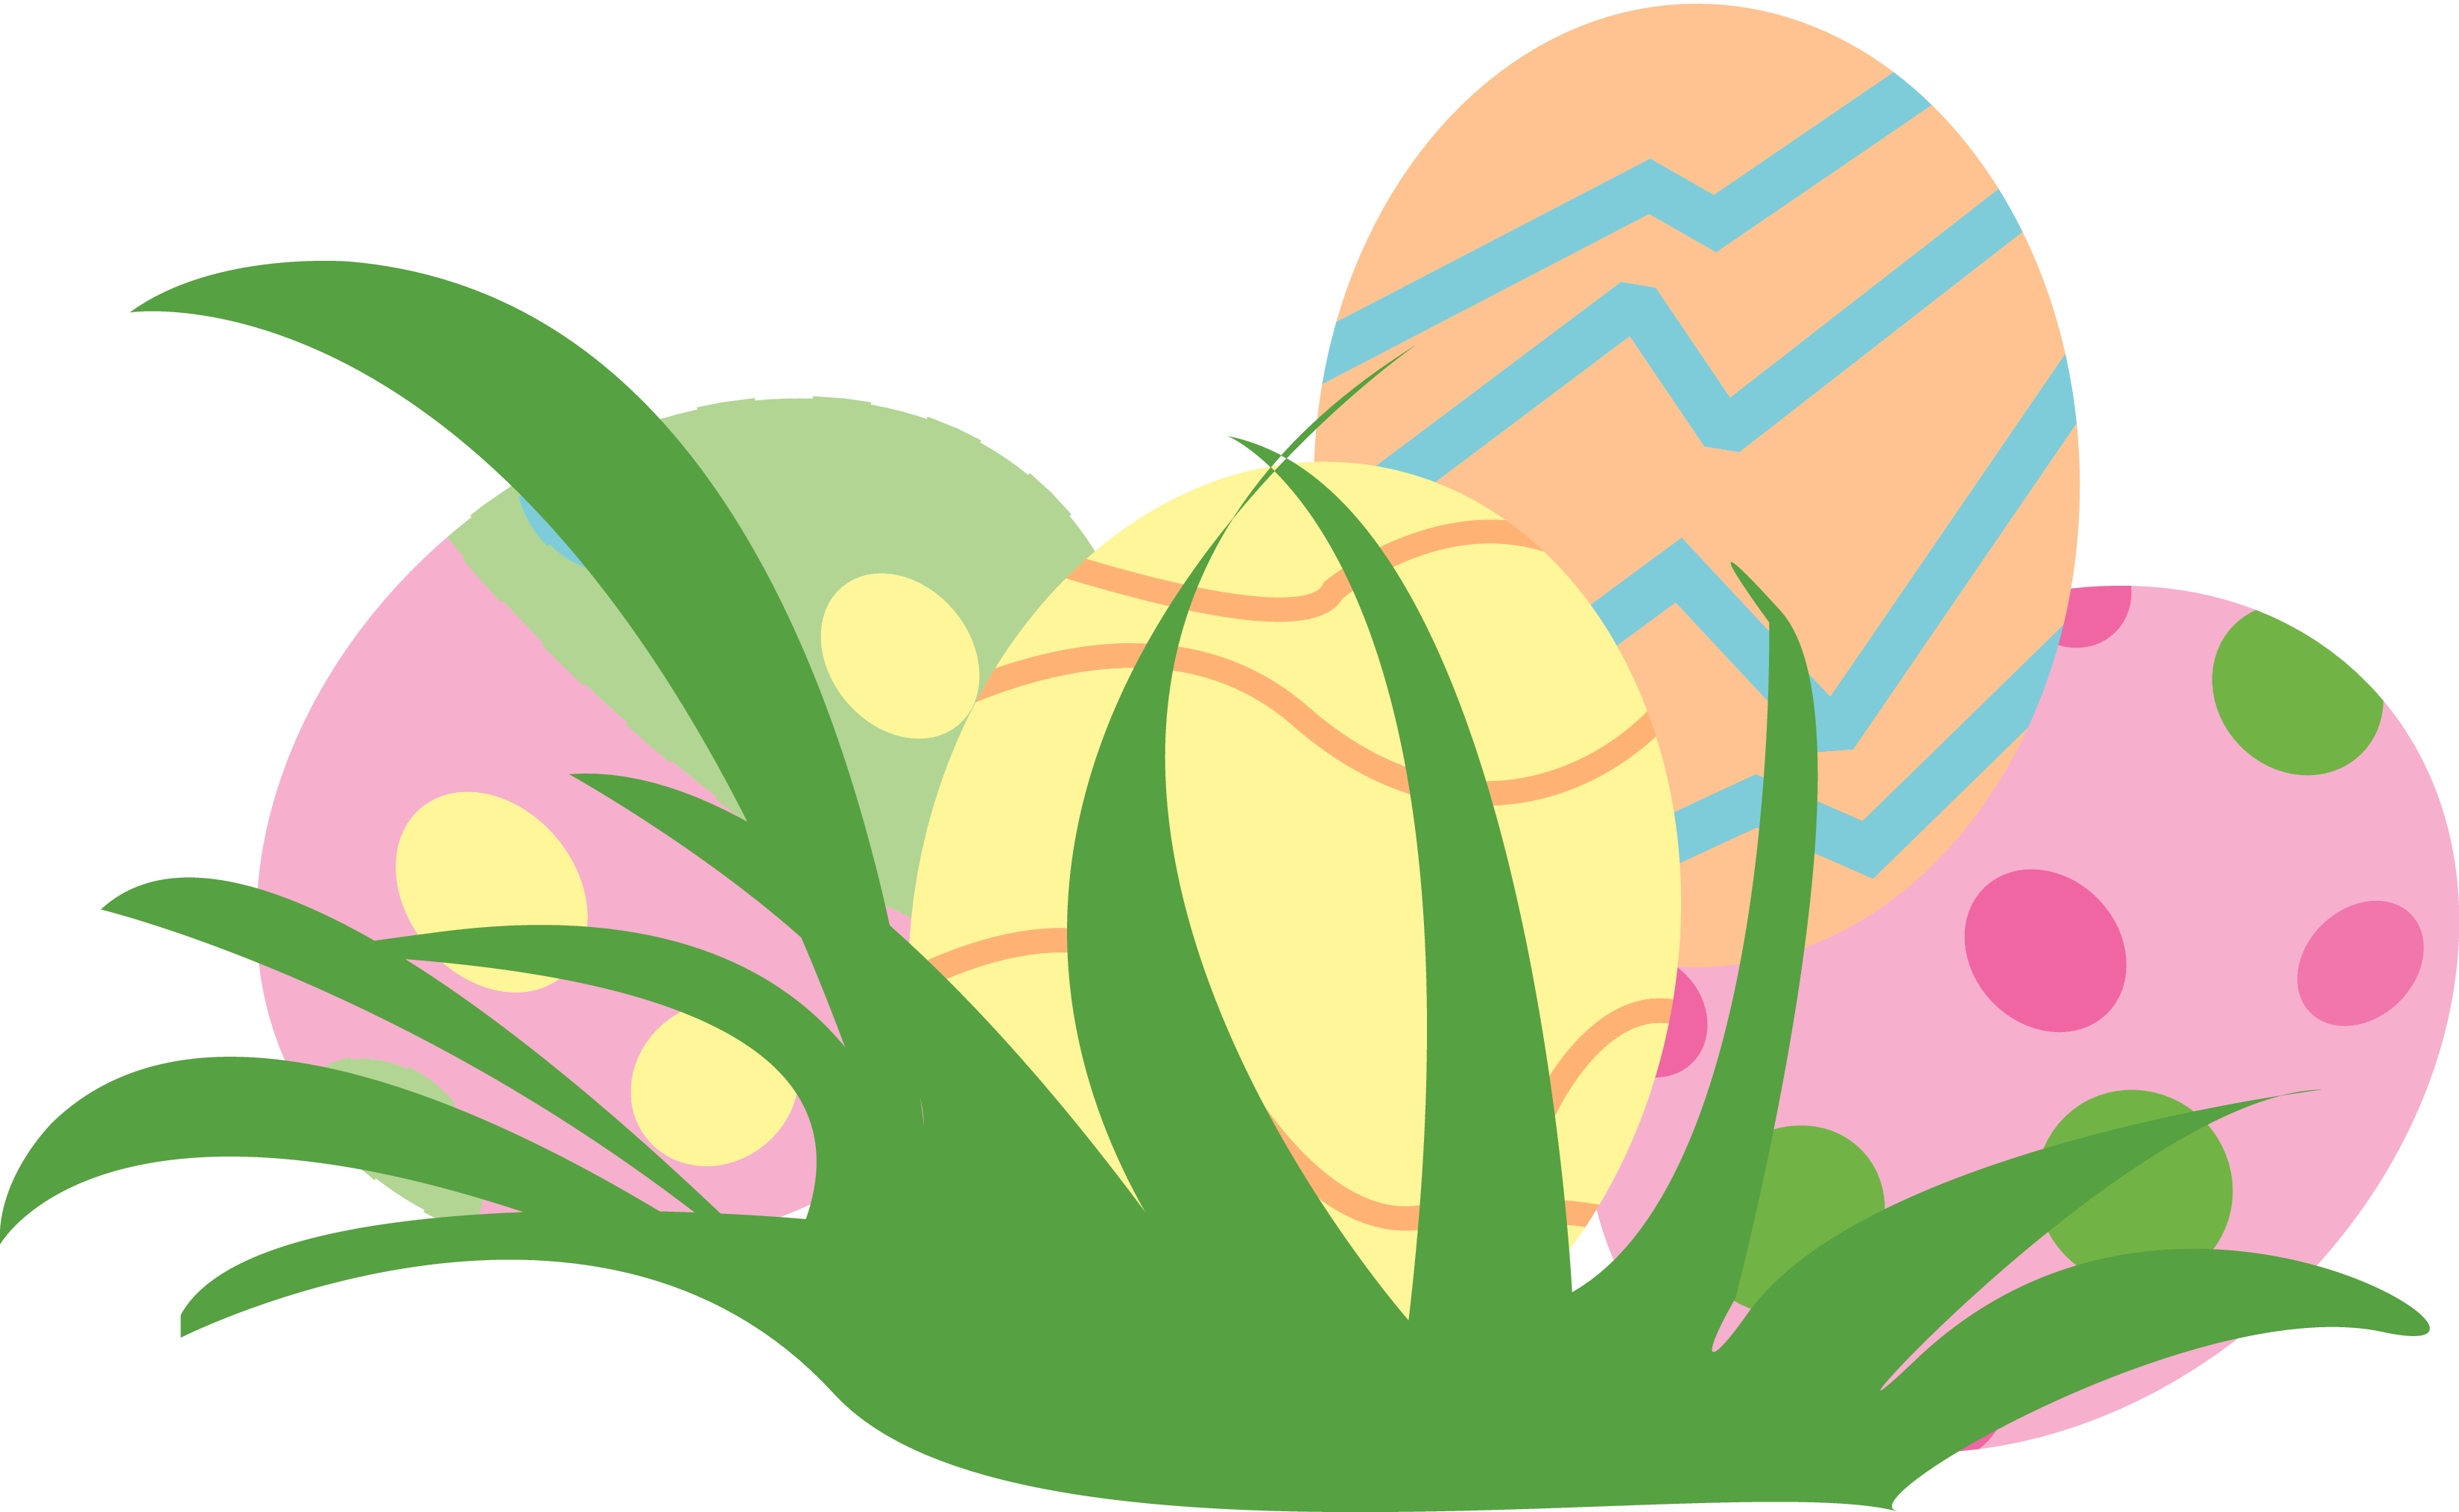 Easter egg clipart suggest